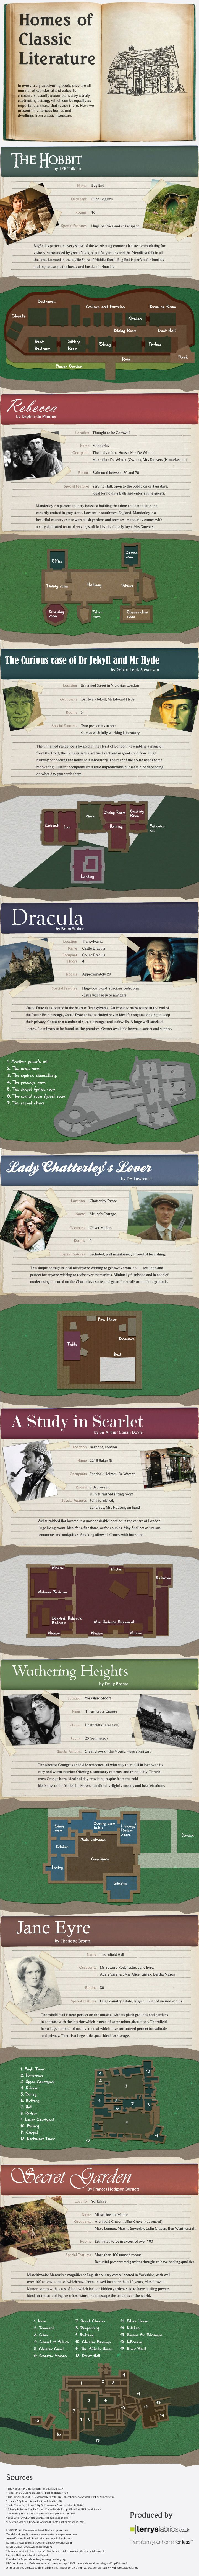 Homes Of Classic Literature  #Infographic #Literature #Homes